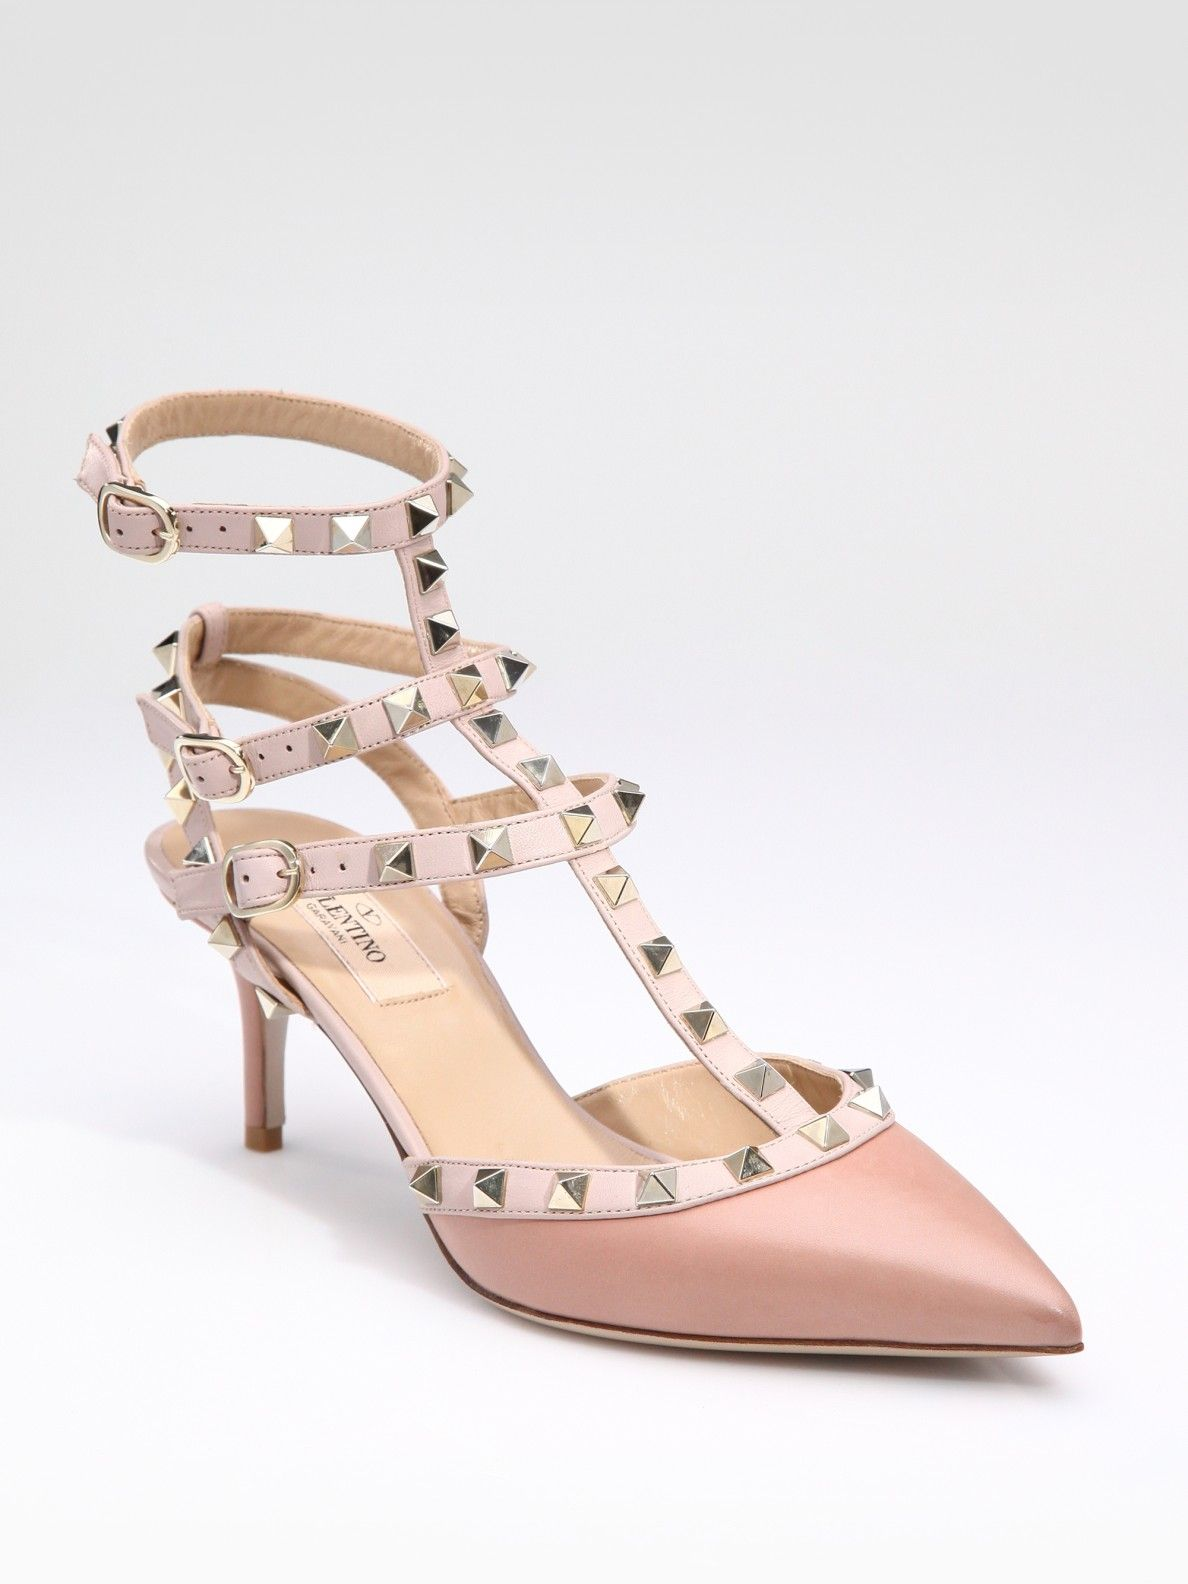 6dfc8c8408a9 Valentino Rockstud Leather Runway Pump in Pink